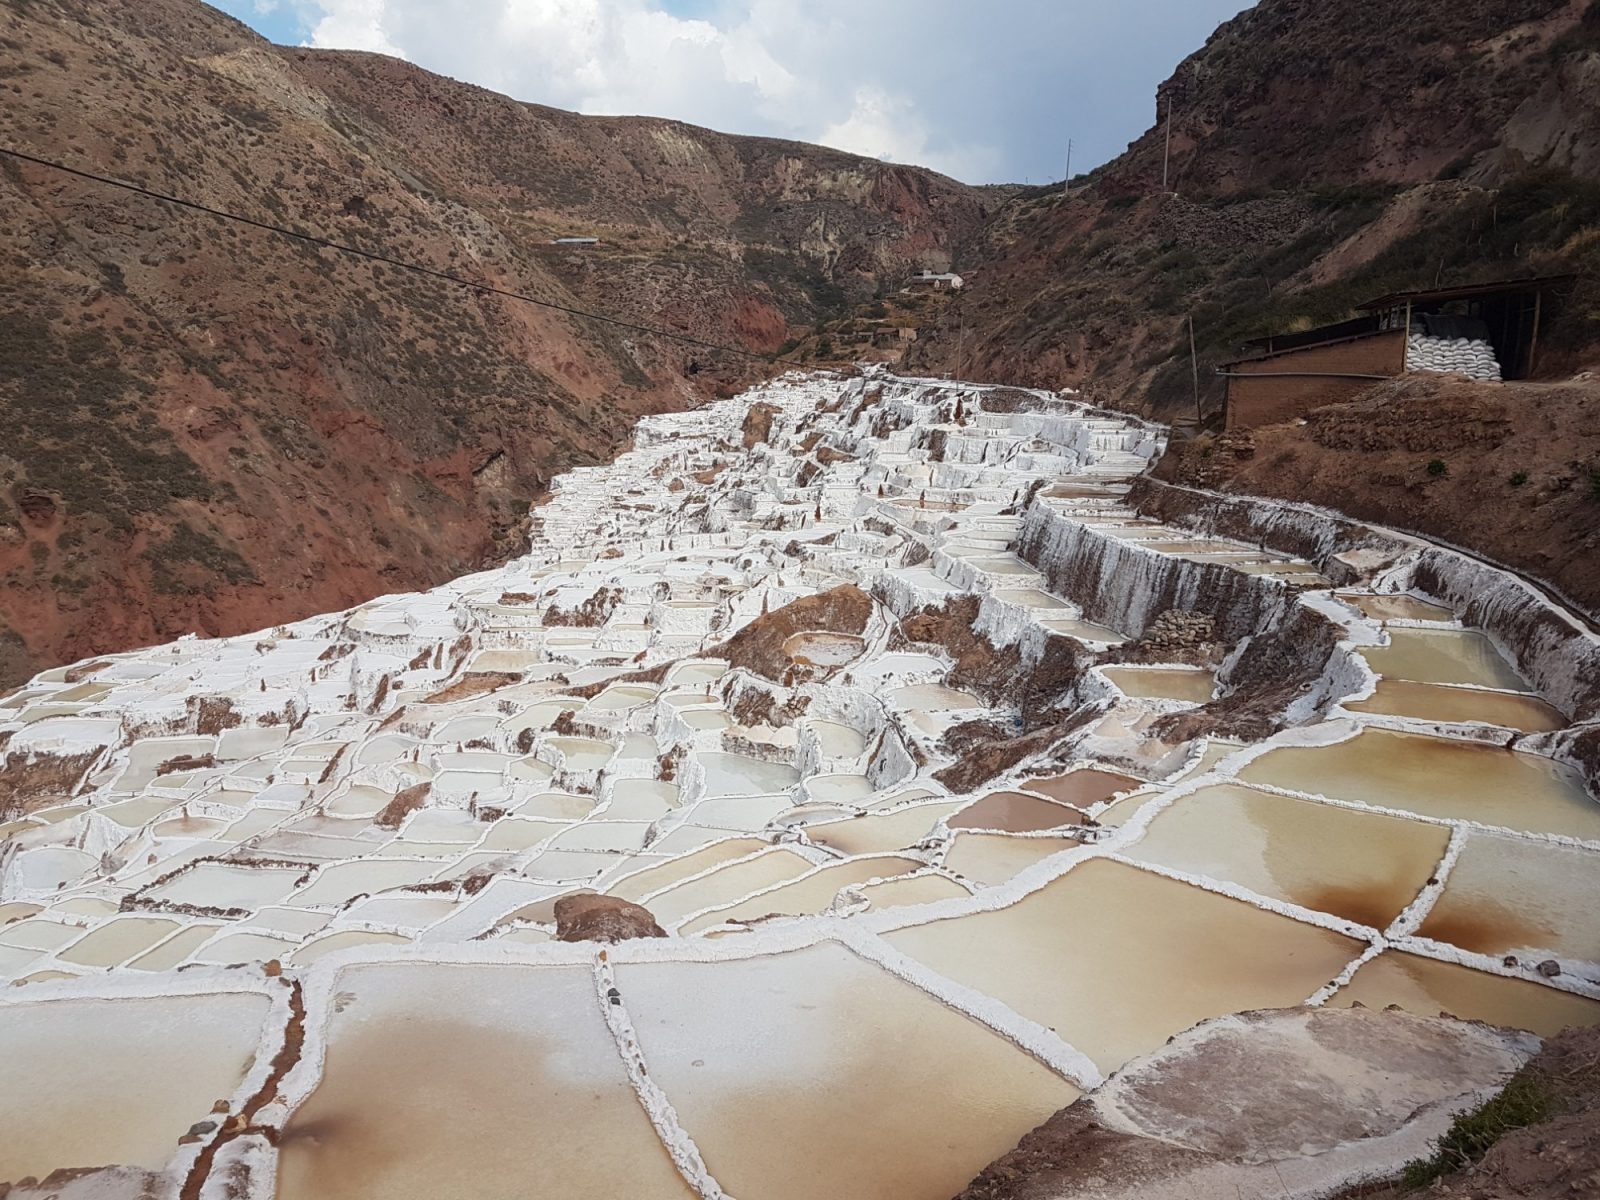 """<img src=""""images/"""" width=""""800"""" height=""""600"""" alt=""""sacred valley - 20171007 141552516067964 - Peru: Town Hopping The Sacred Valley"""">"""